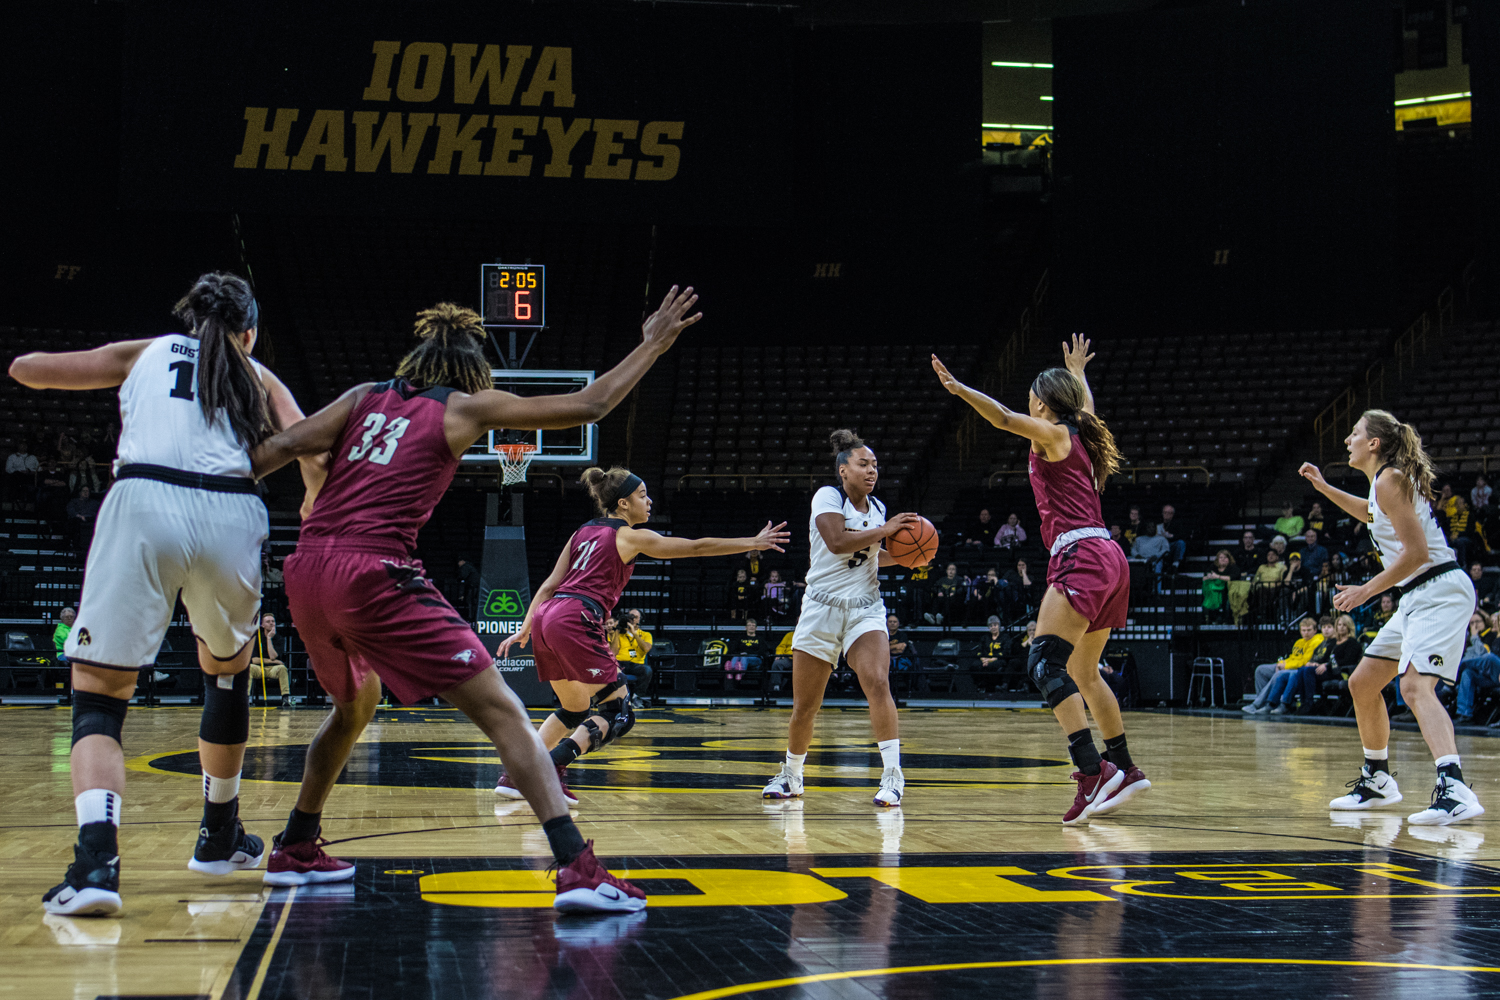 Iowa+guard+Alexis+Sevillian+passes+the+ball+during+a+women%27s+basketball+game+between+Iowa+and+North+Carolina+Central+at+Carver-Hawkeye+Arena+on+Saturday%2C+Nov.+17%2C+2018.+The+Hawkeyes+devastated+the+visiting+Eagles%2C+106-39.+